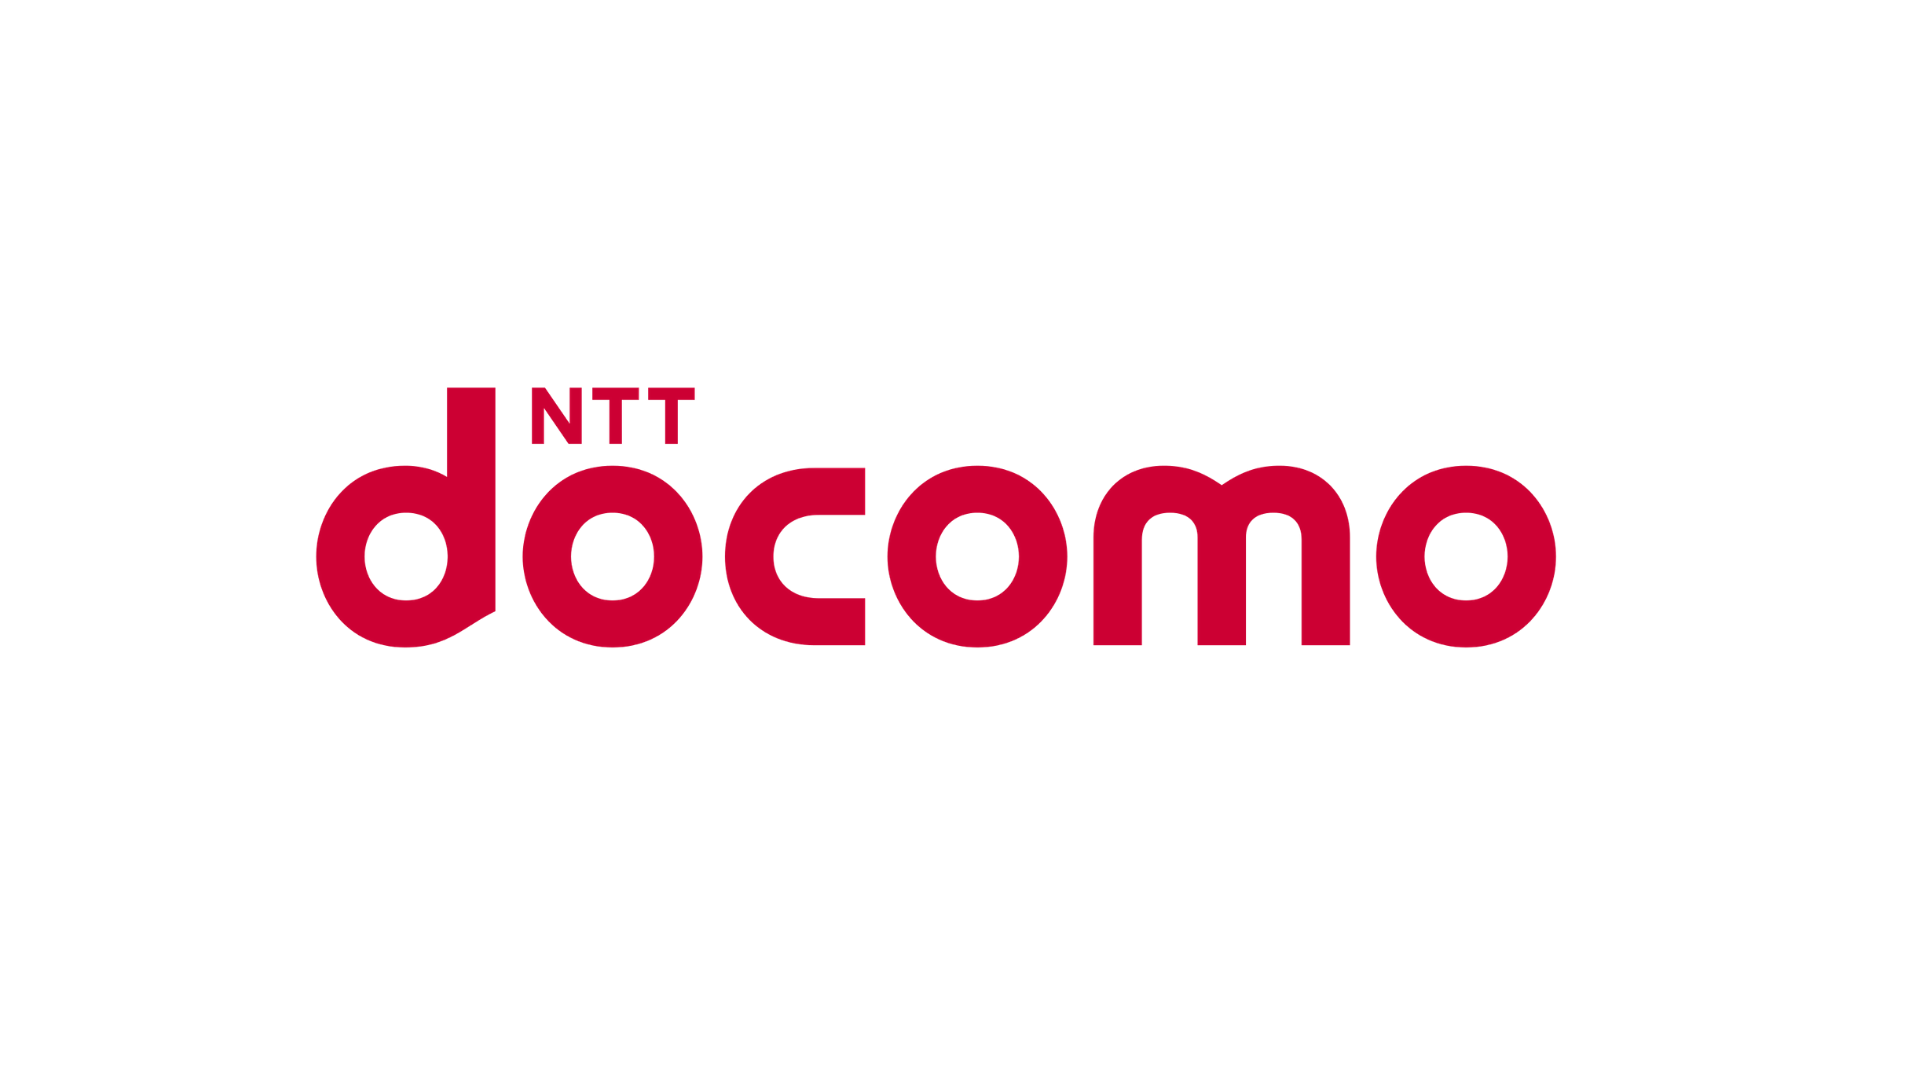 DOCOMO – Becoming leaders in the mcommerce industry